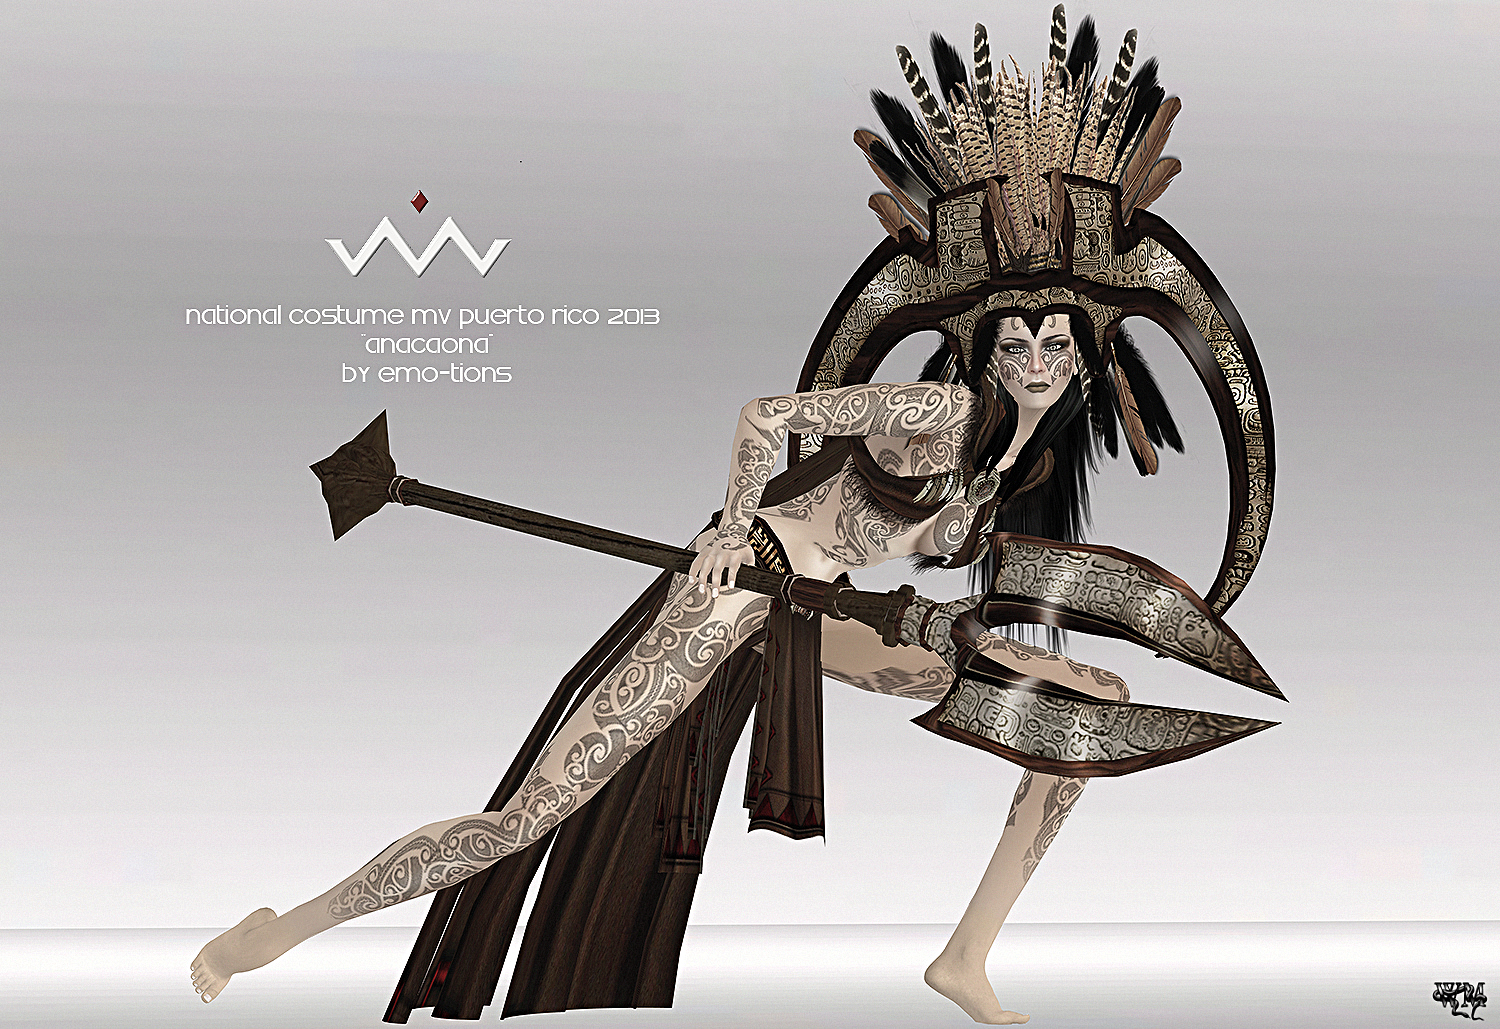 of MVW2013 – National Costume of Puerto Rico 2013 by EMO-tions